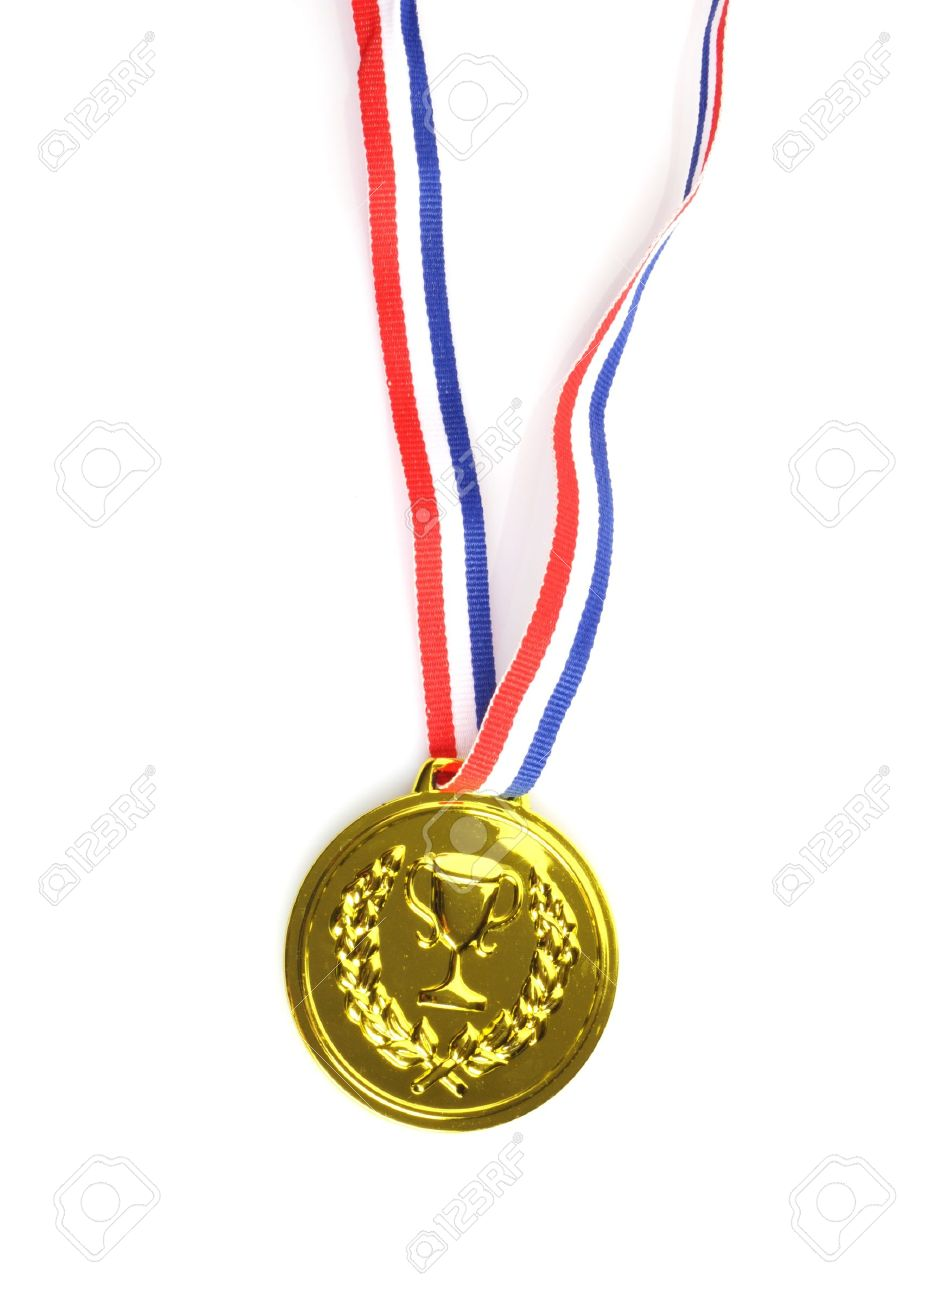 gold medal with ribbon on white background Stock Photo - 11475568